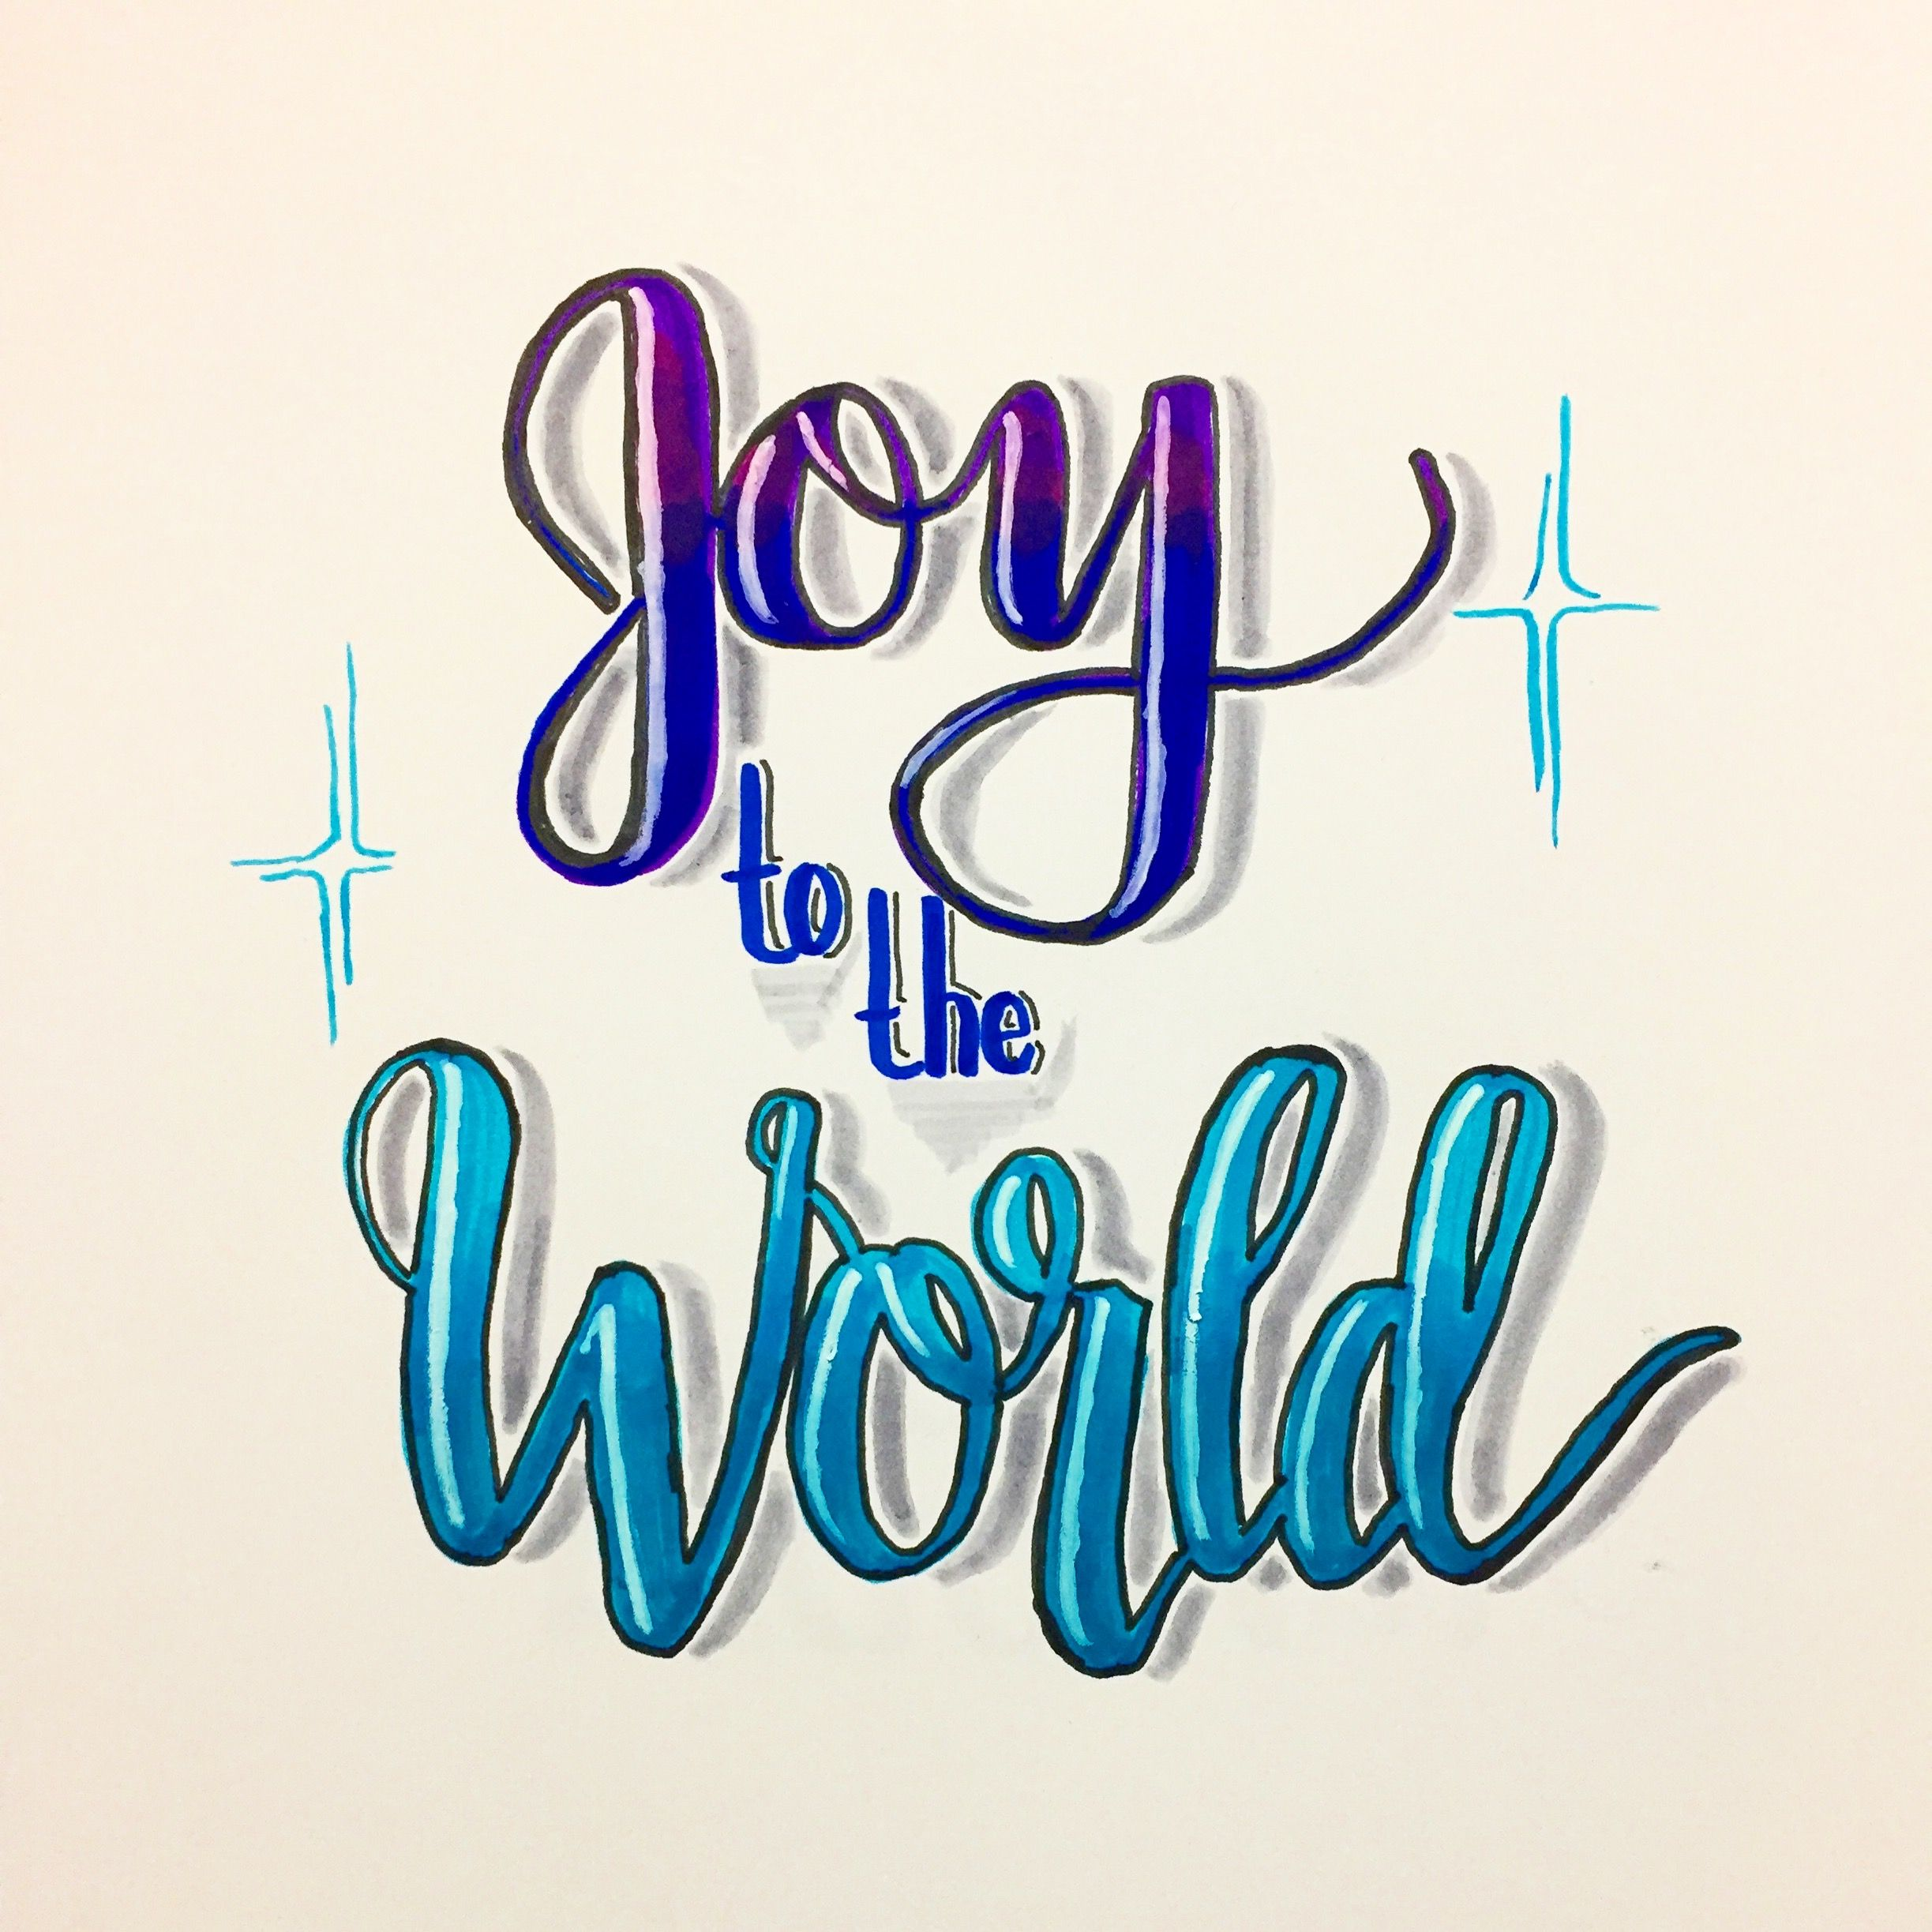 Joy To The World Joytotheworld Lettering Calligraphy Moderncalligraphy Brushlettering